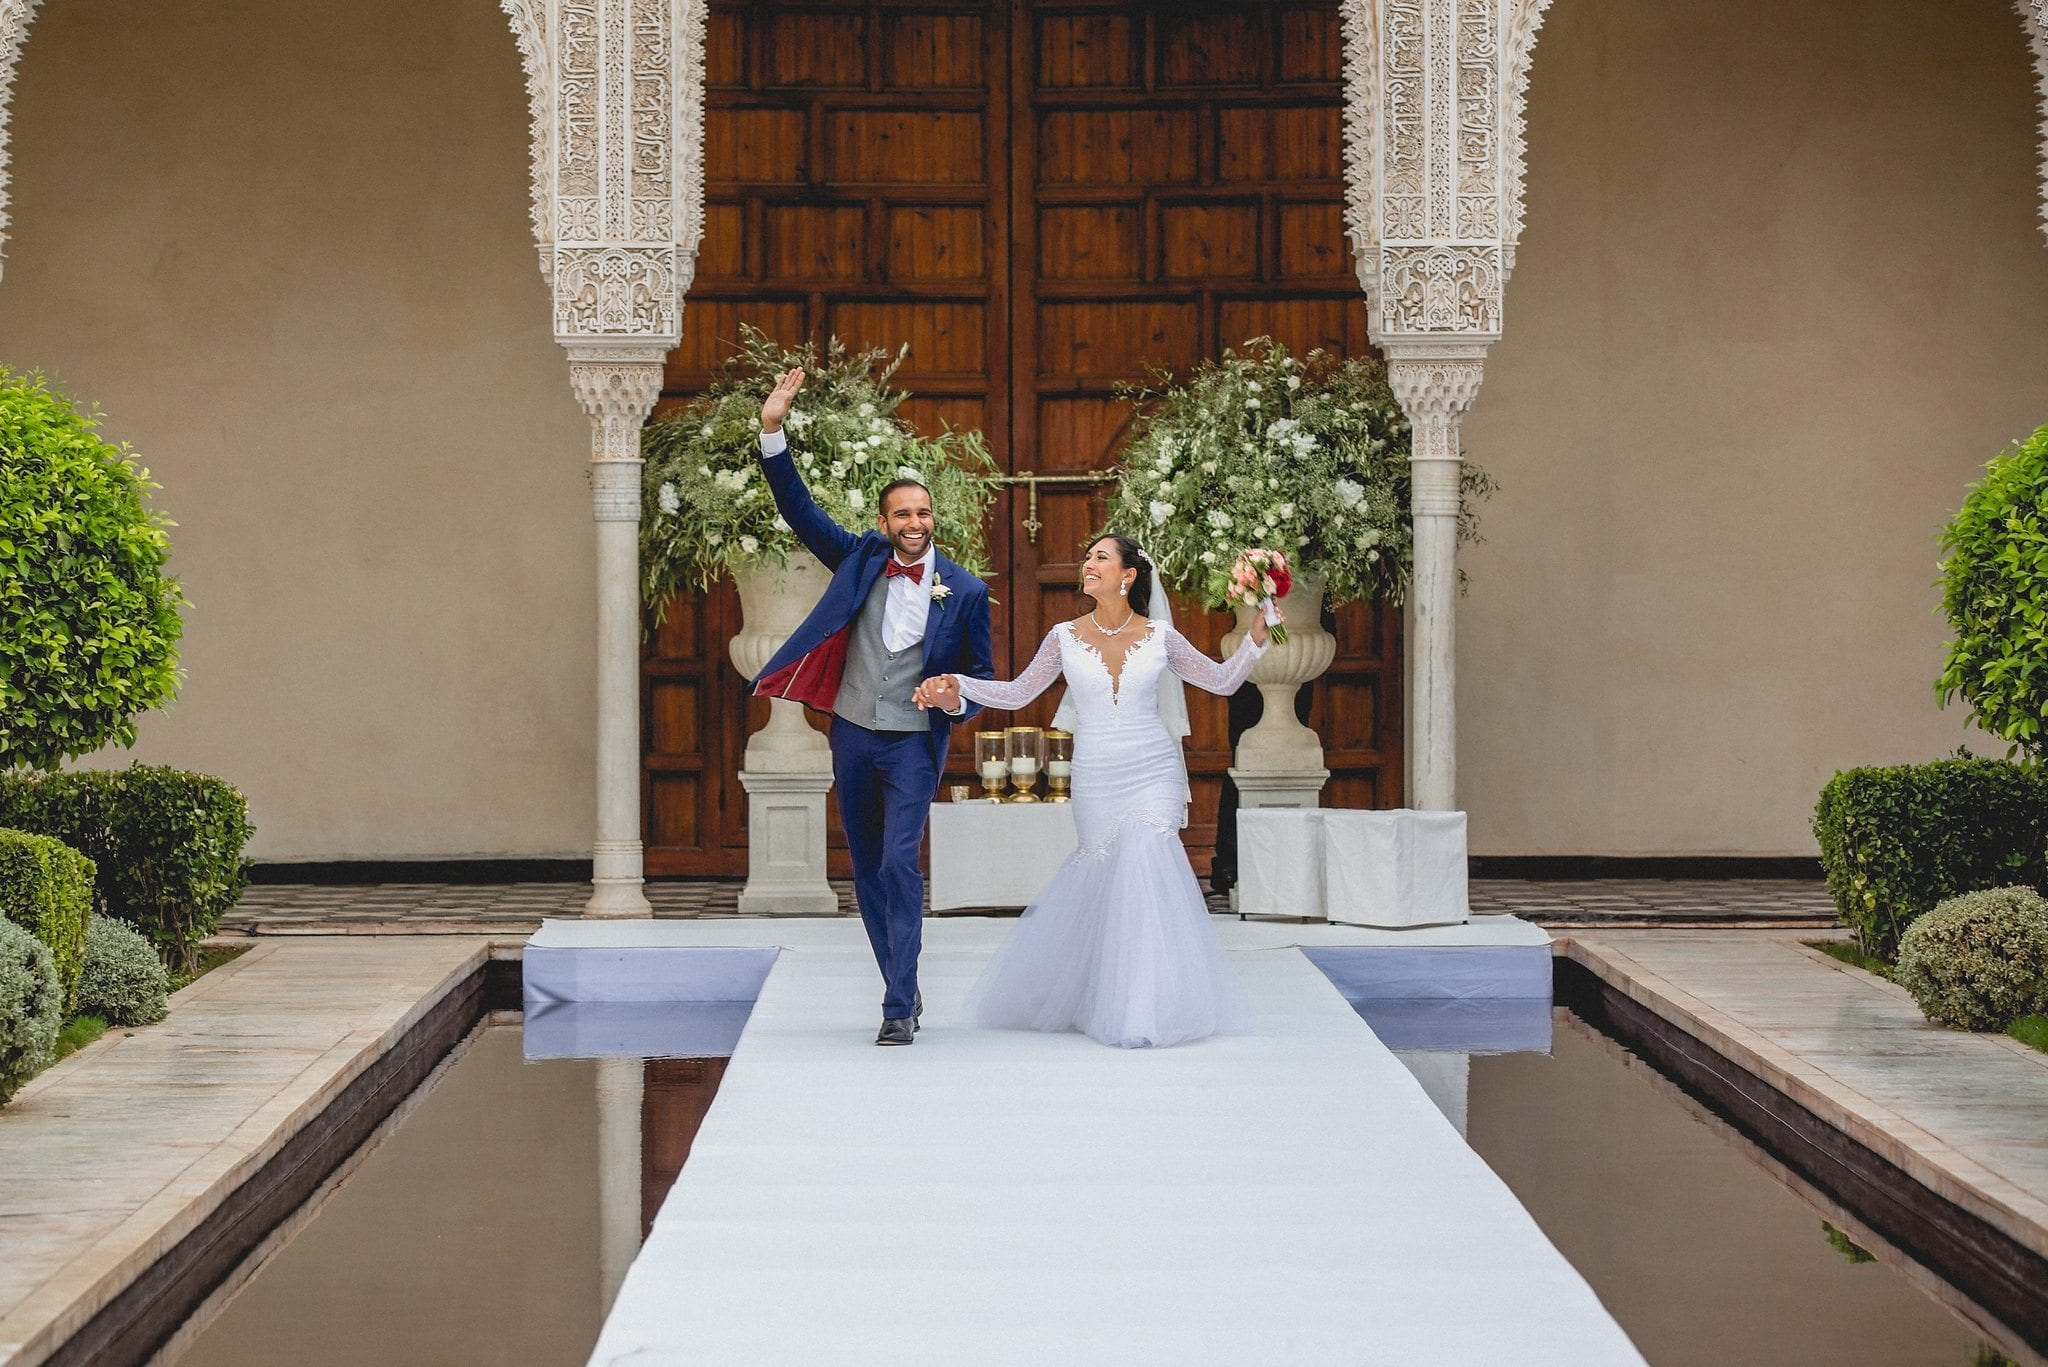 The Bride and Groom dance back down the aisle as husband and wife at Ksar Char Bagh